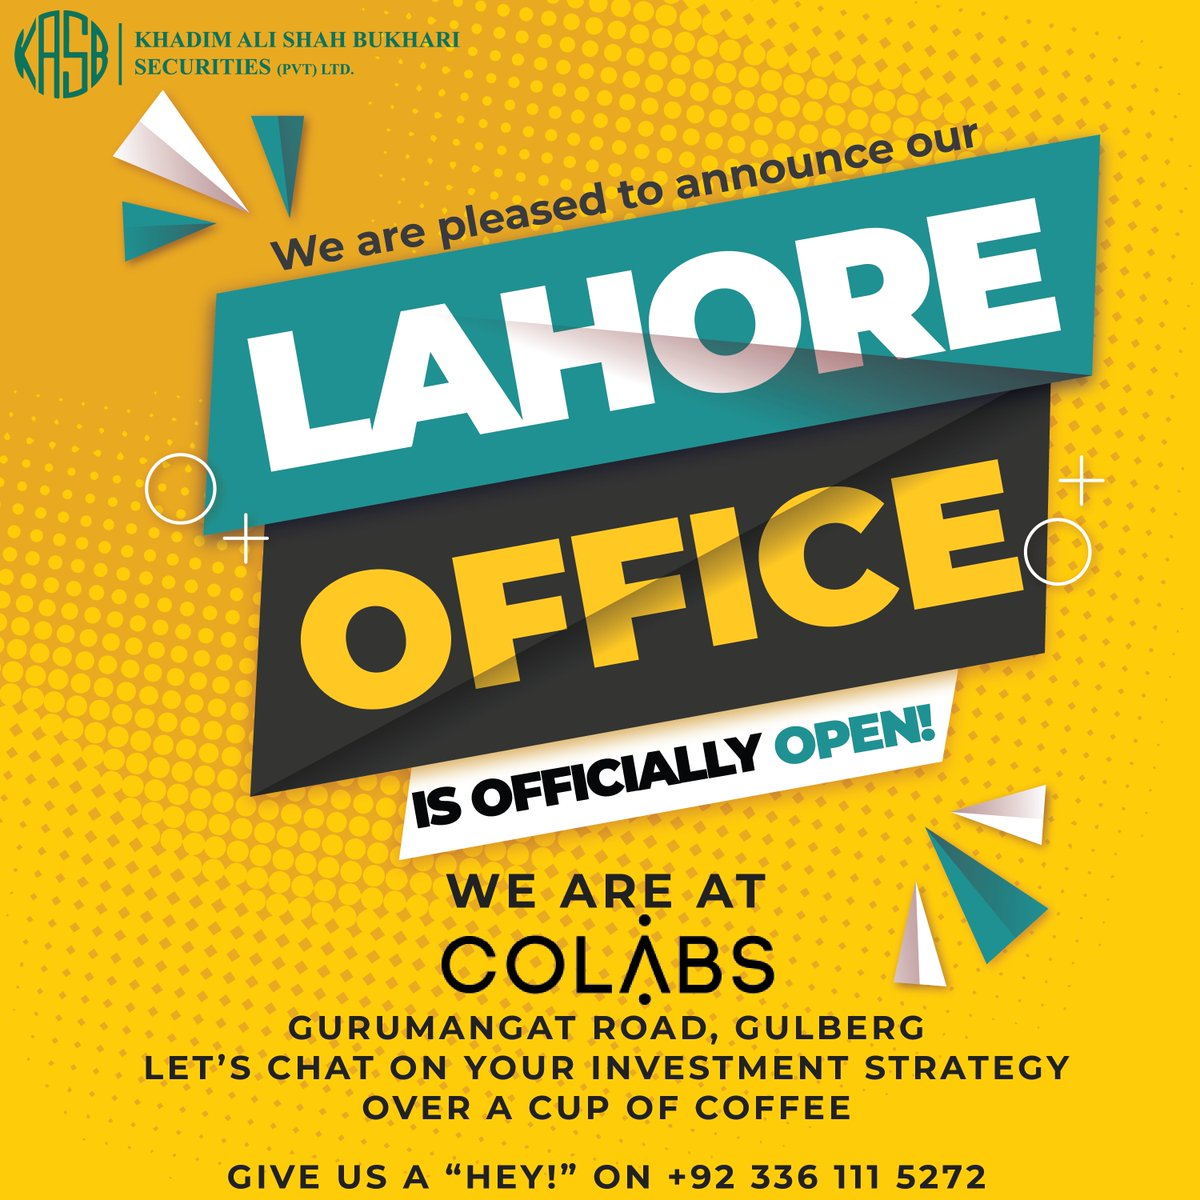 We are now in Lahore to be at your service. We are located at COLABS -Gurumangat Road, Gulberg. #kasb #smartinvesting #Stayhome #Staysafe #PSX #KTrade https://t.co/Nl8wQrSqYR